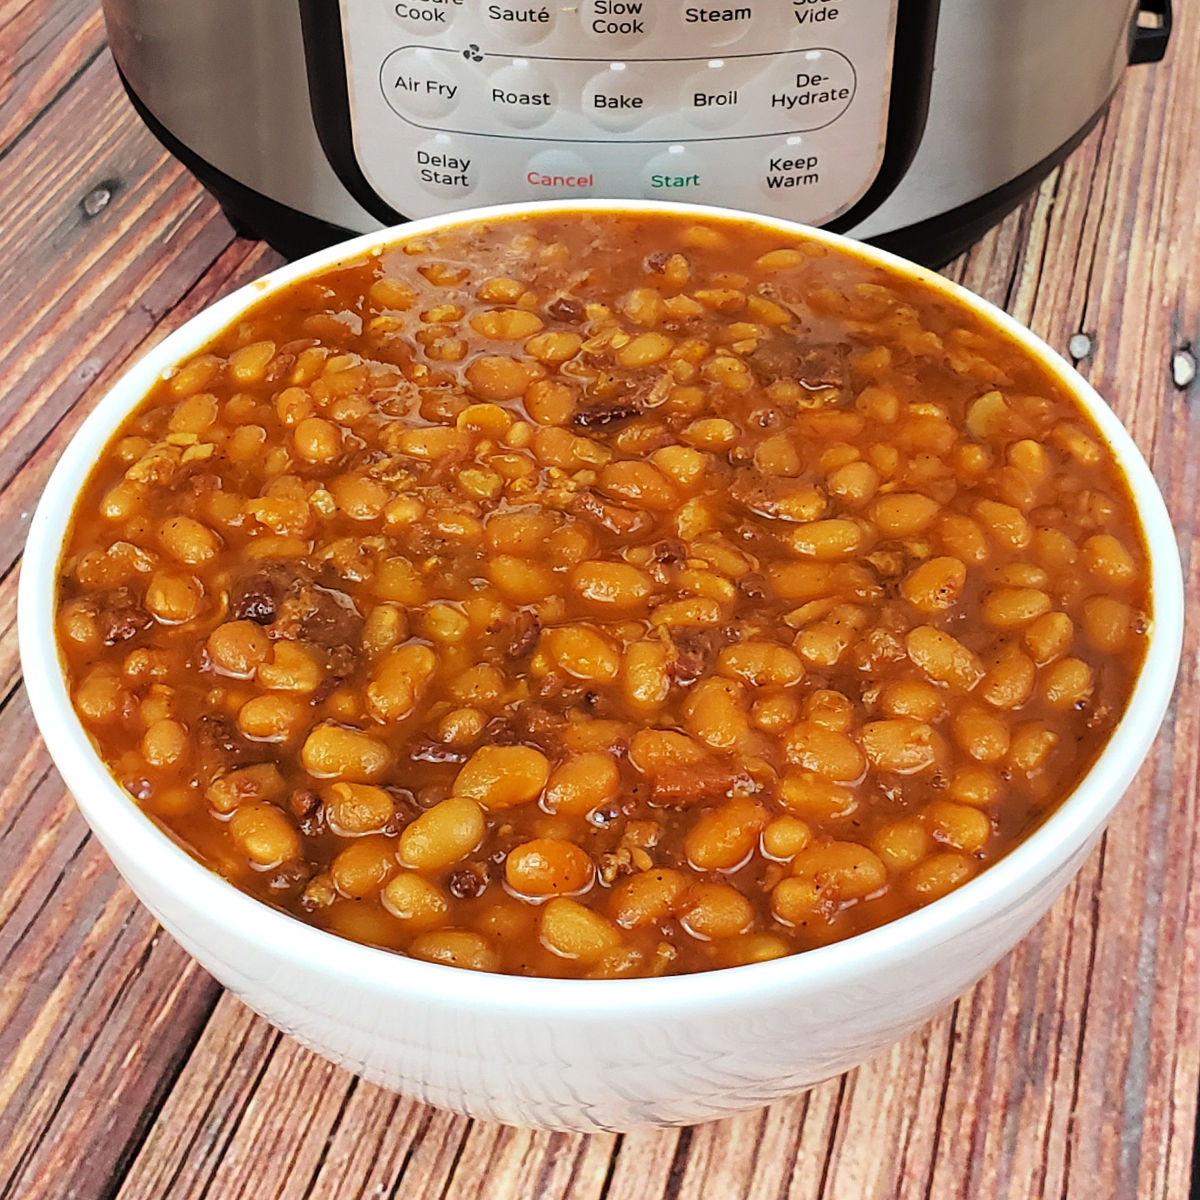 Baked beans in white serving bowl in front of Instant Pot on table.